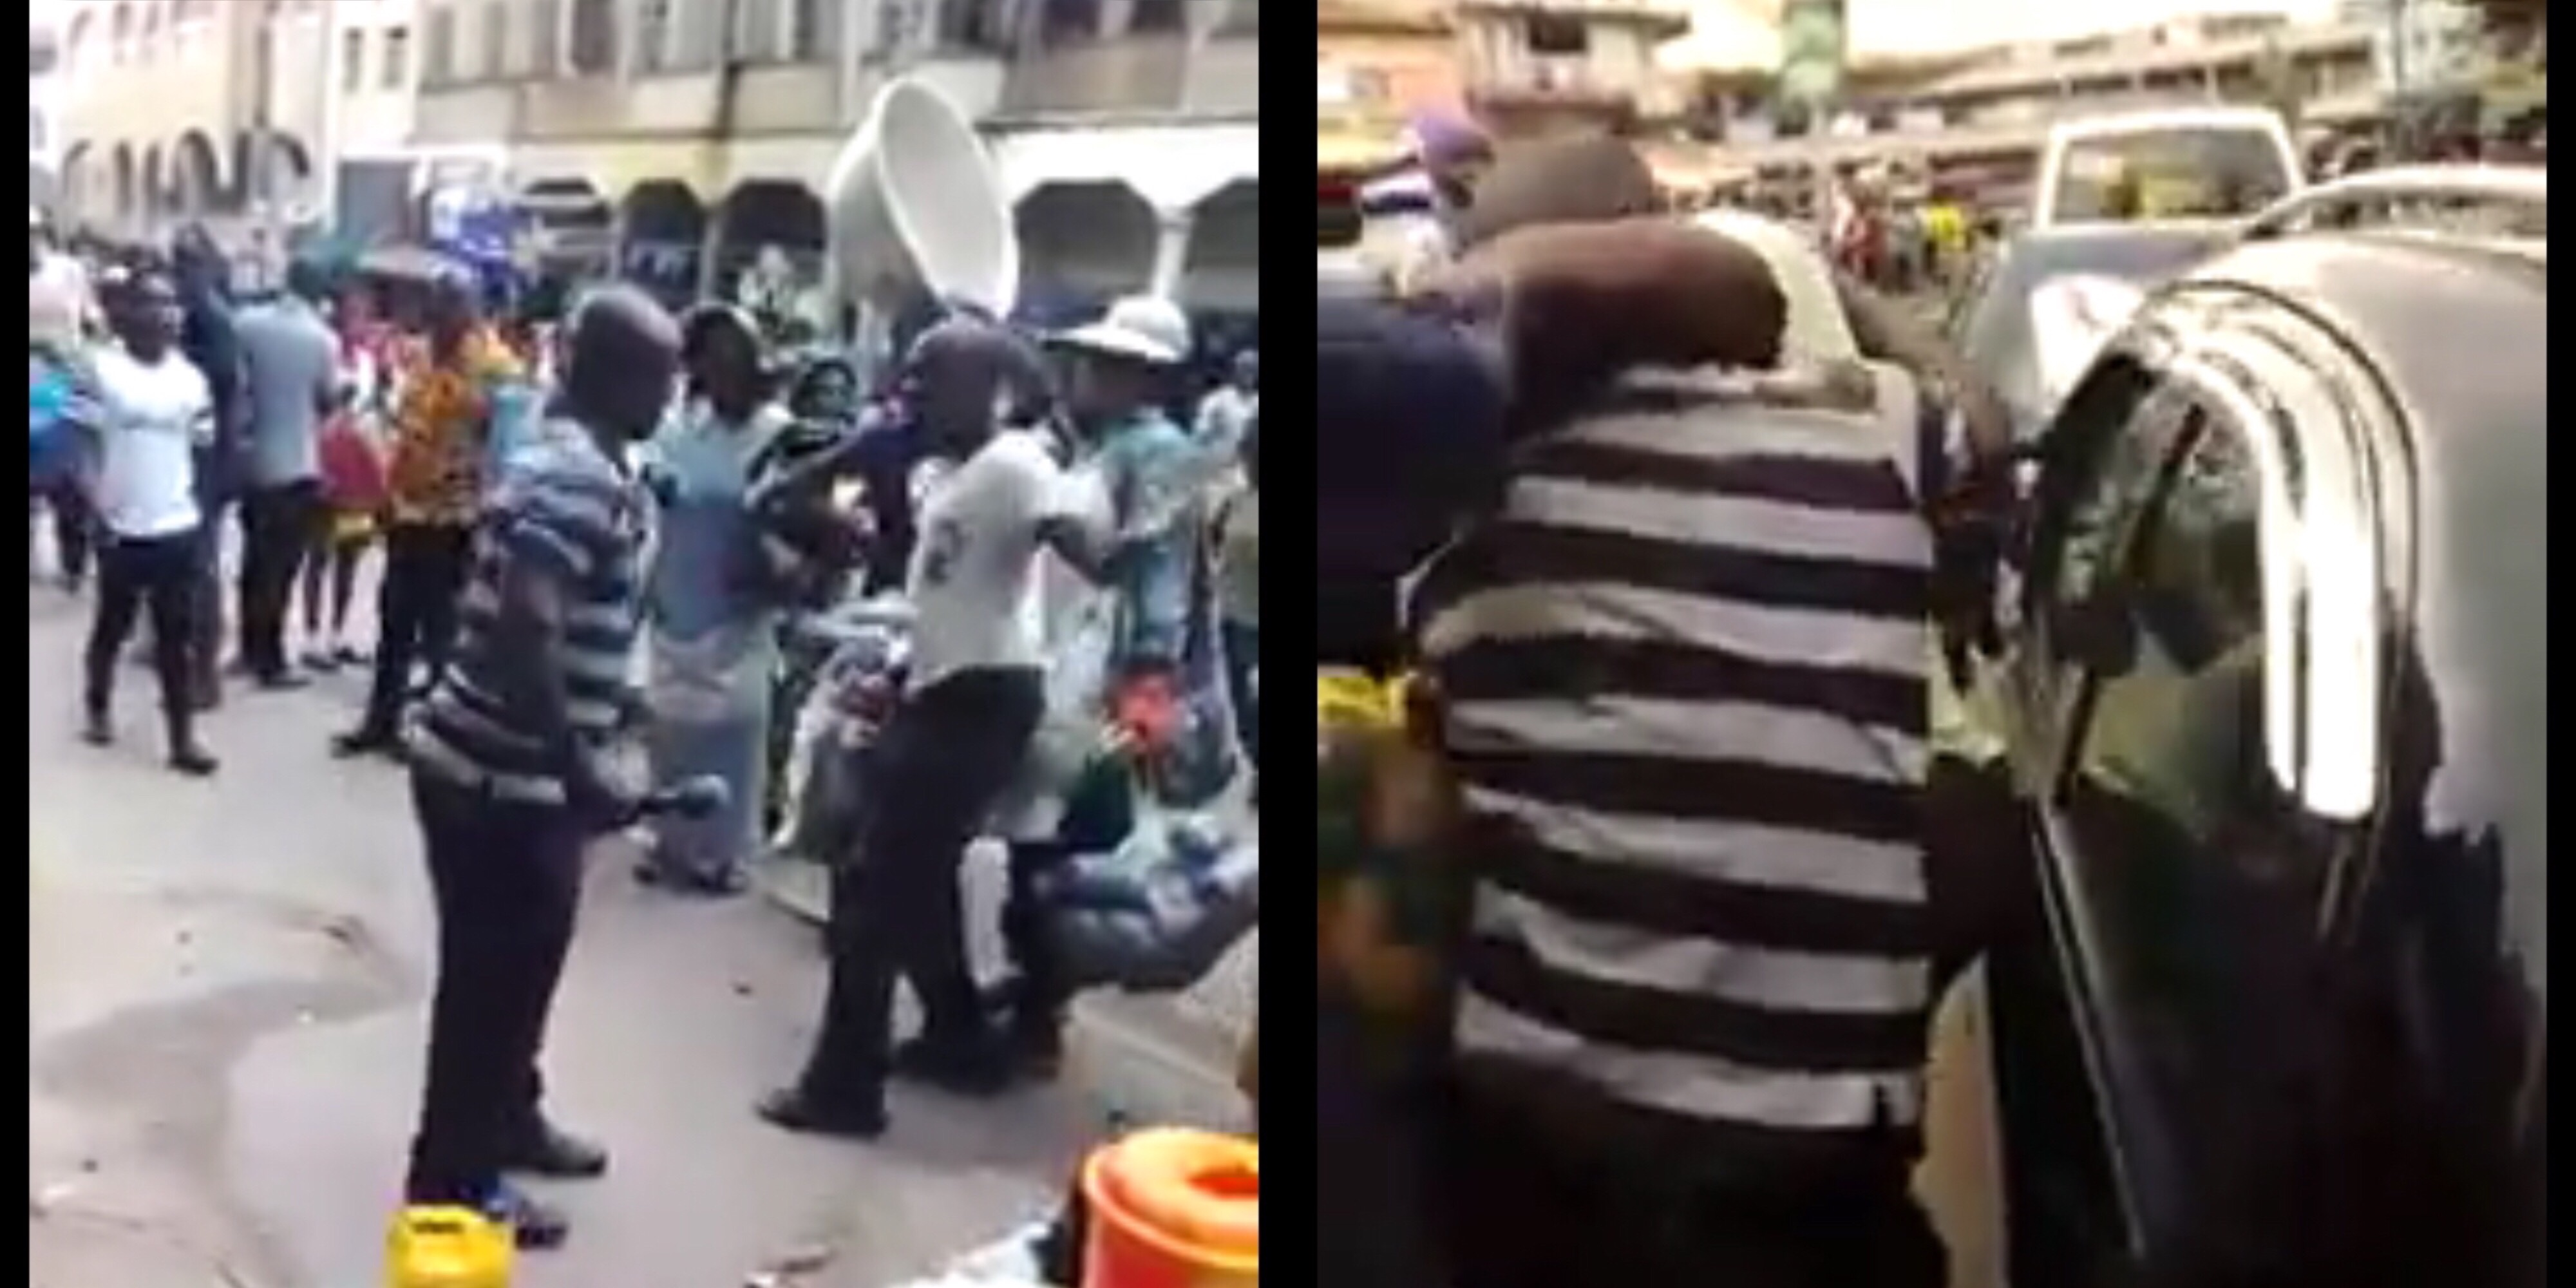 Two Pastors Exchange Hot Blows inside Market Over Space To Preach (VID)